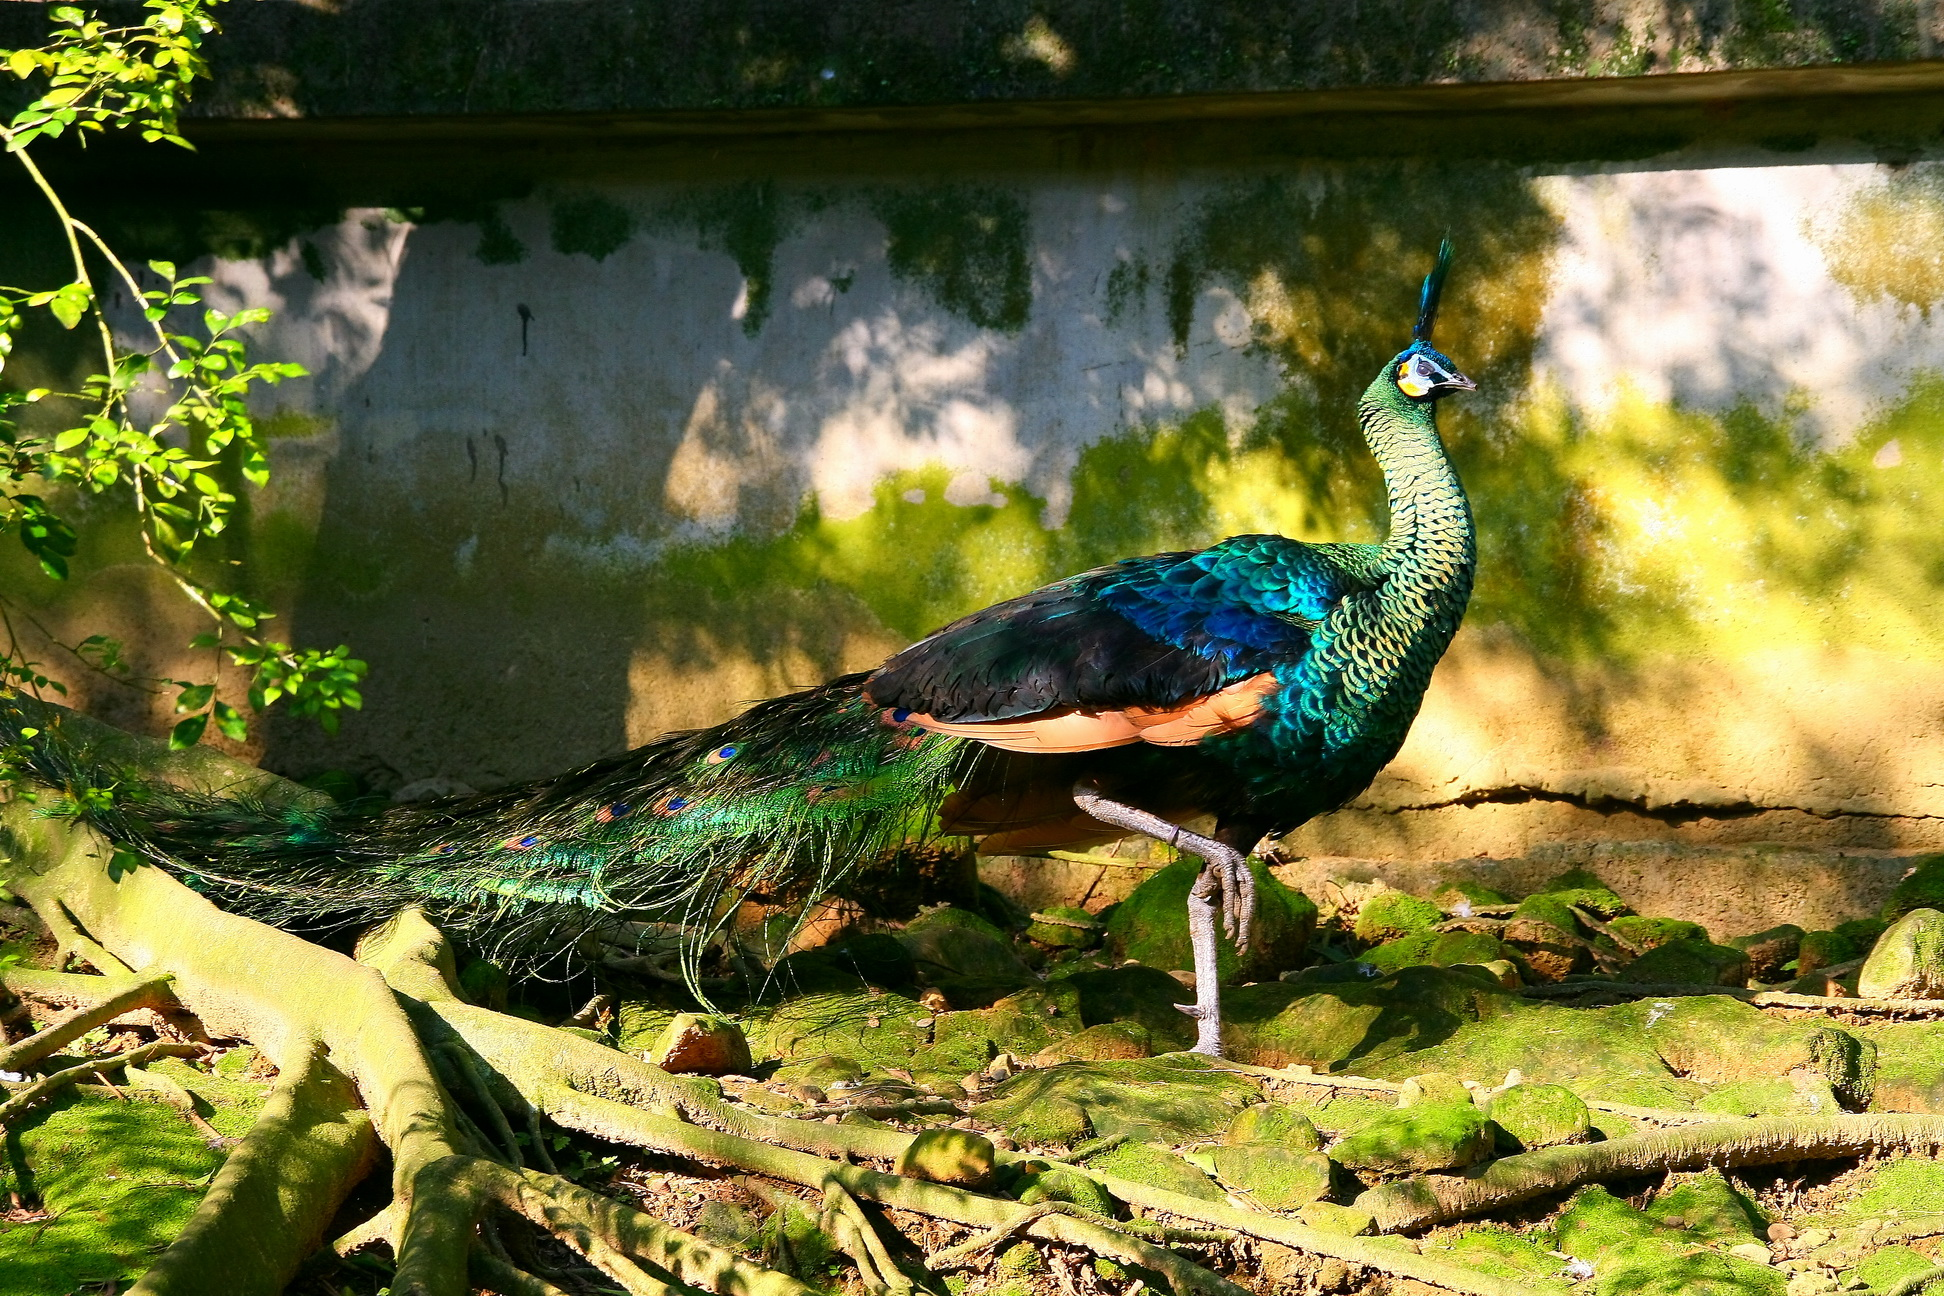 Green Peafowl (Pavo muticus) - Wiki; Image ONLY